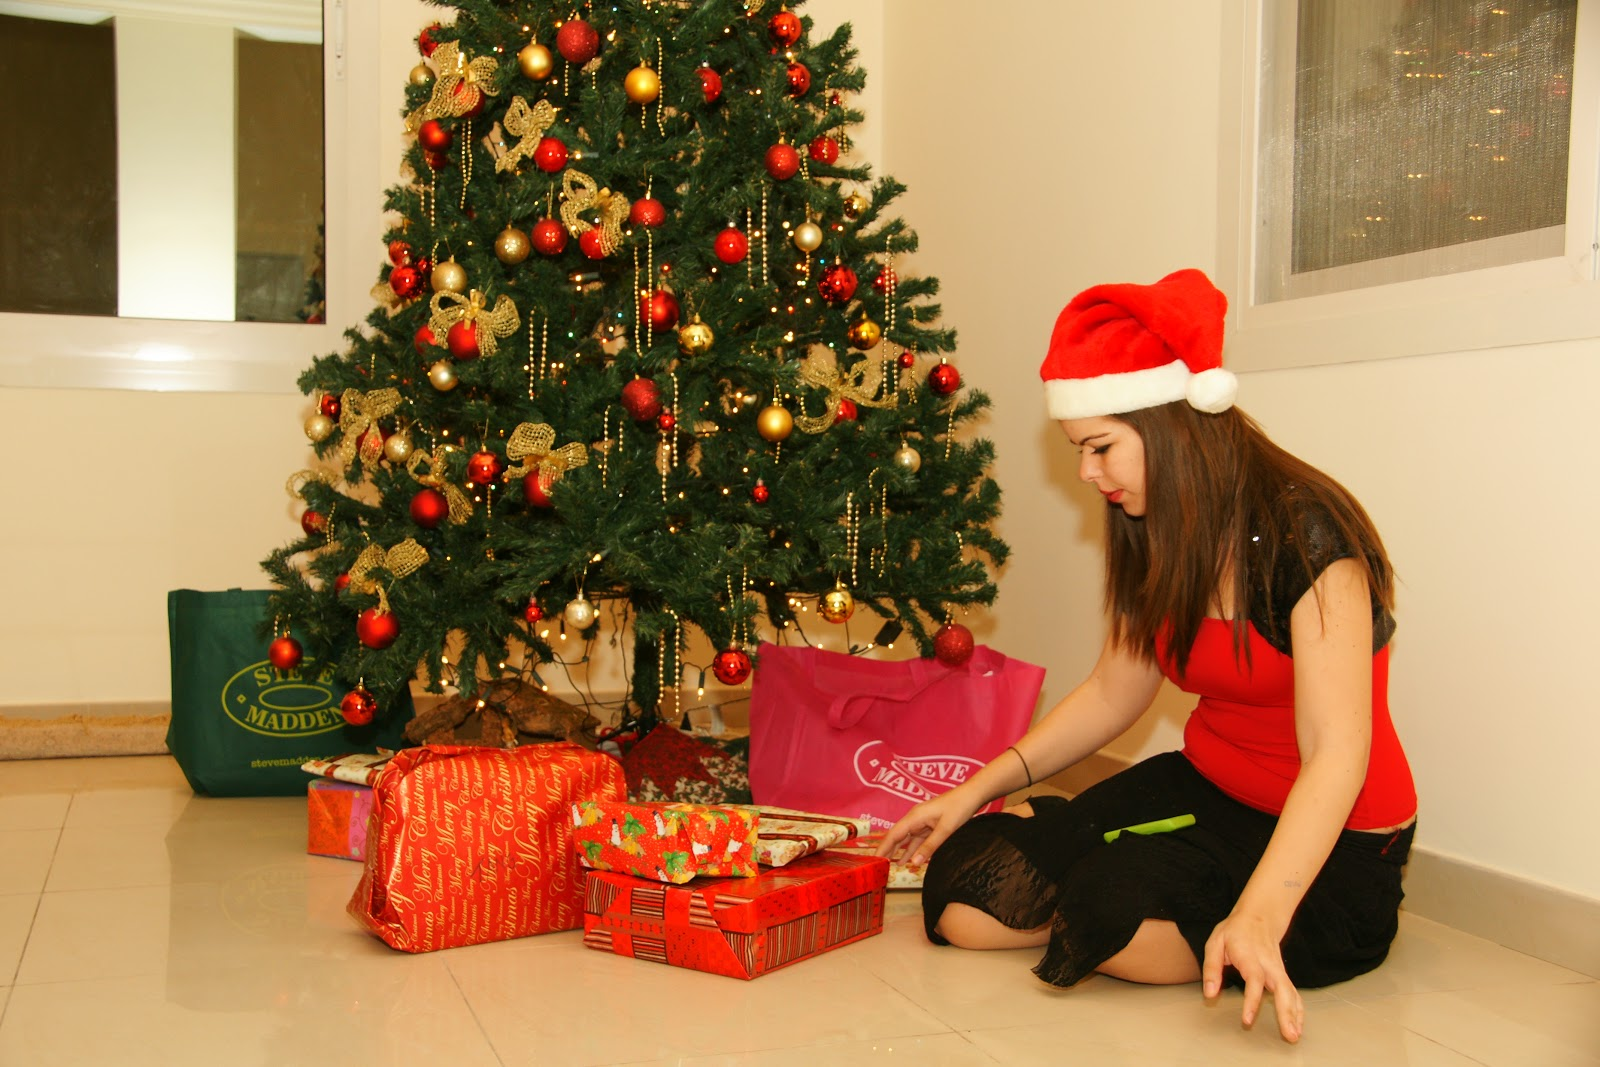 Time To Unwrap the Presents!